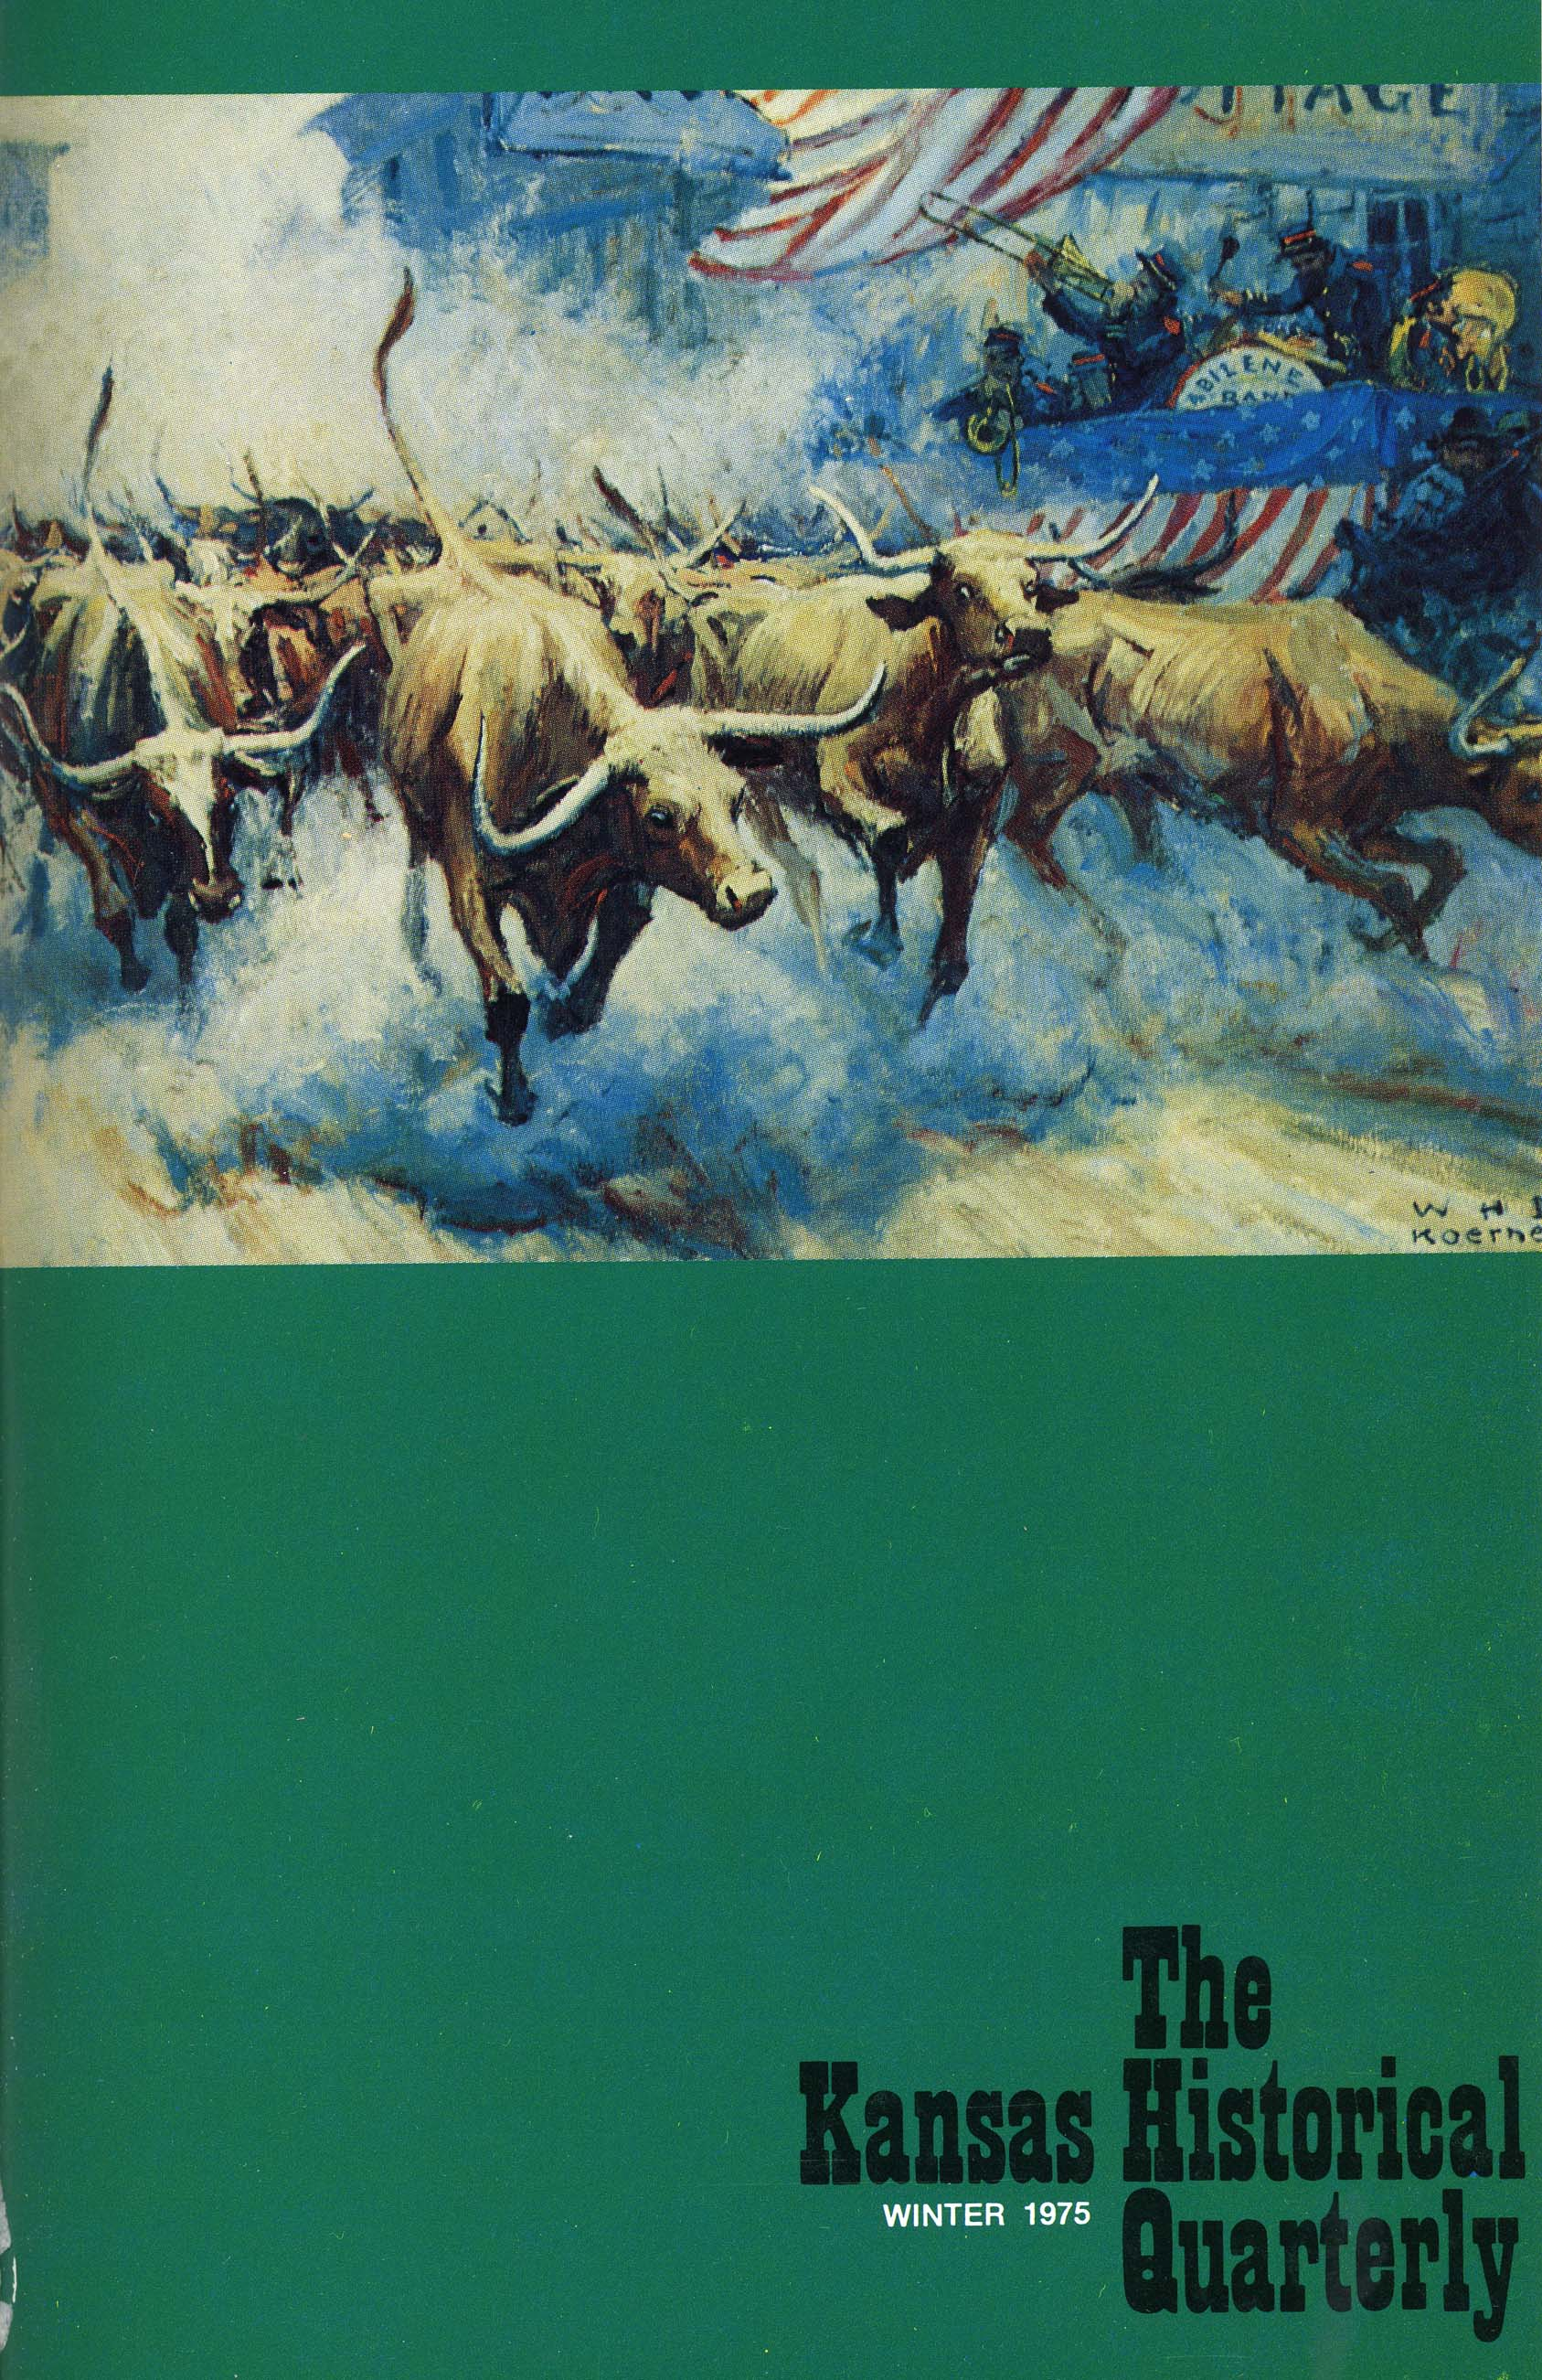 Kansas Historical Quarterly, Winter 1975